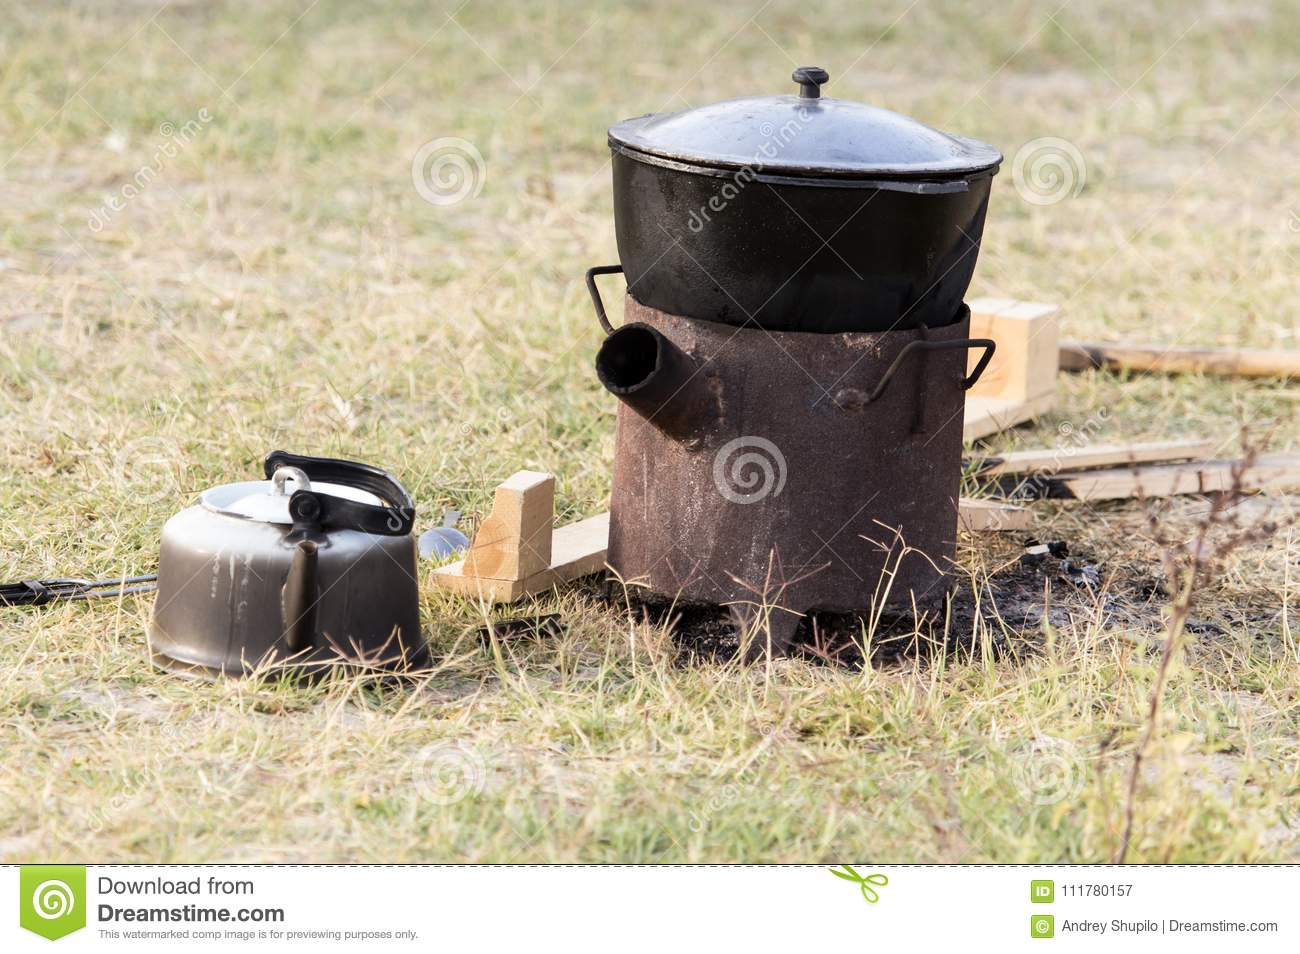 Cauldron of soup on the nature